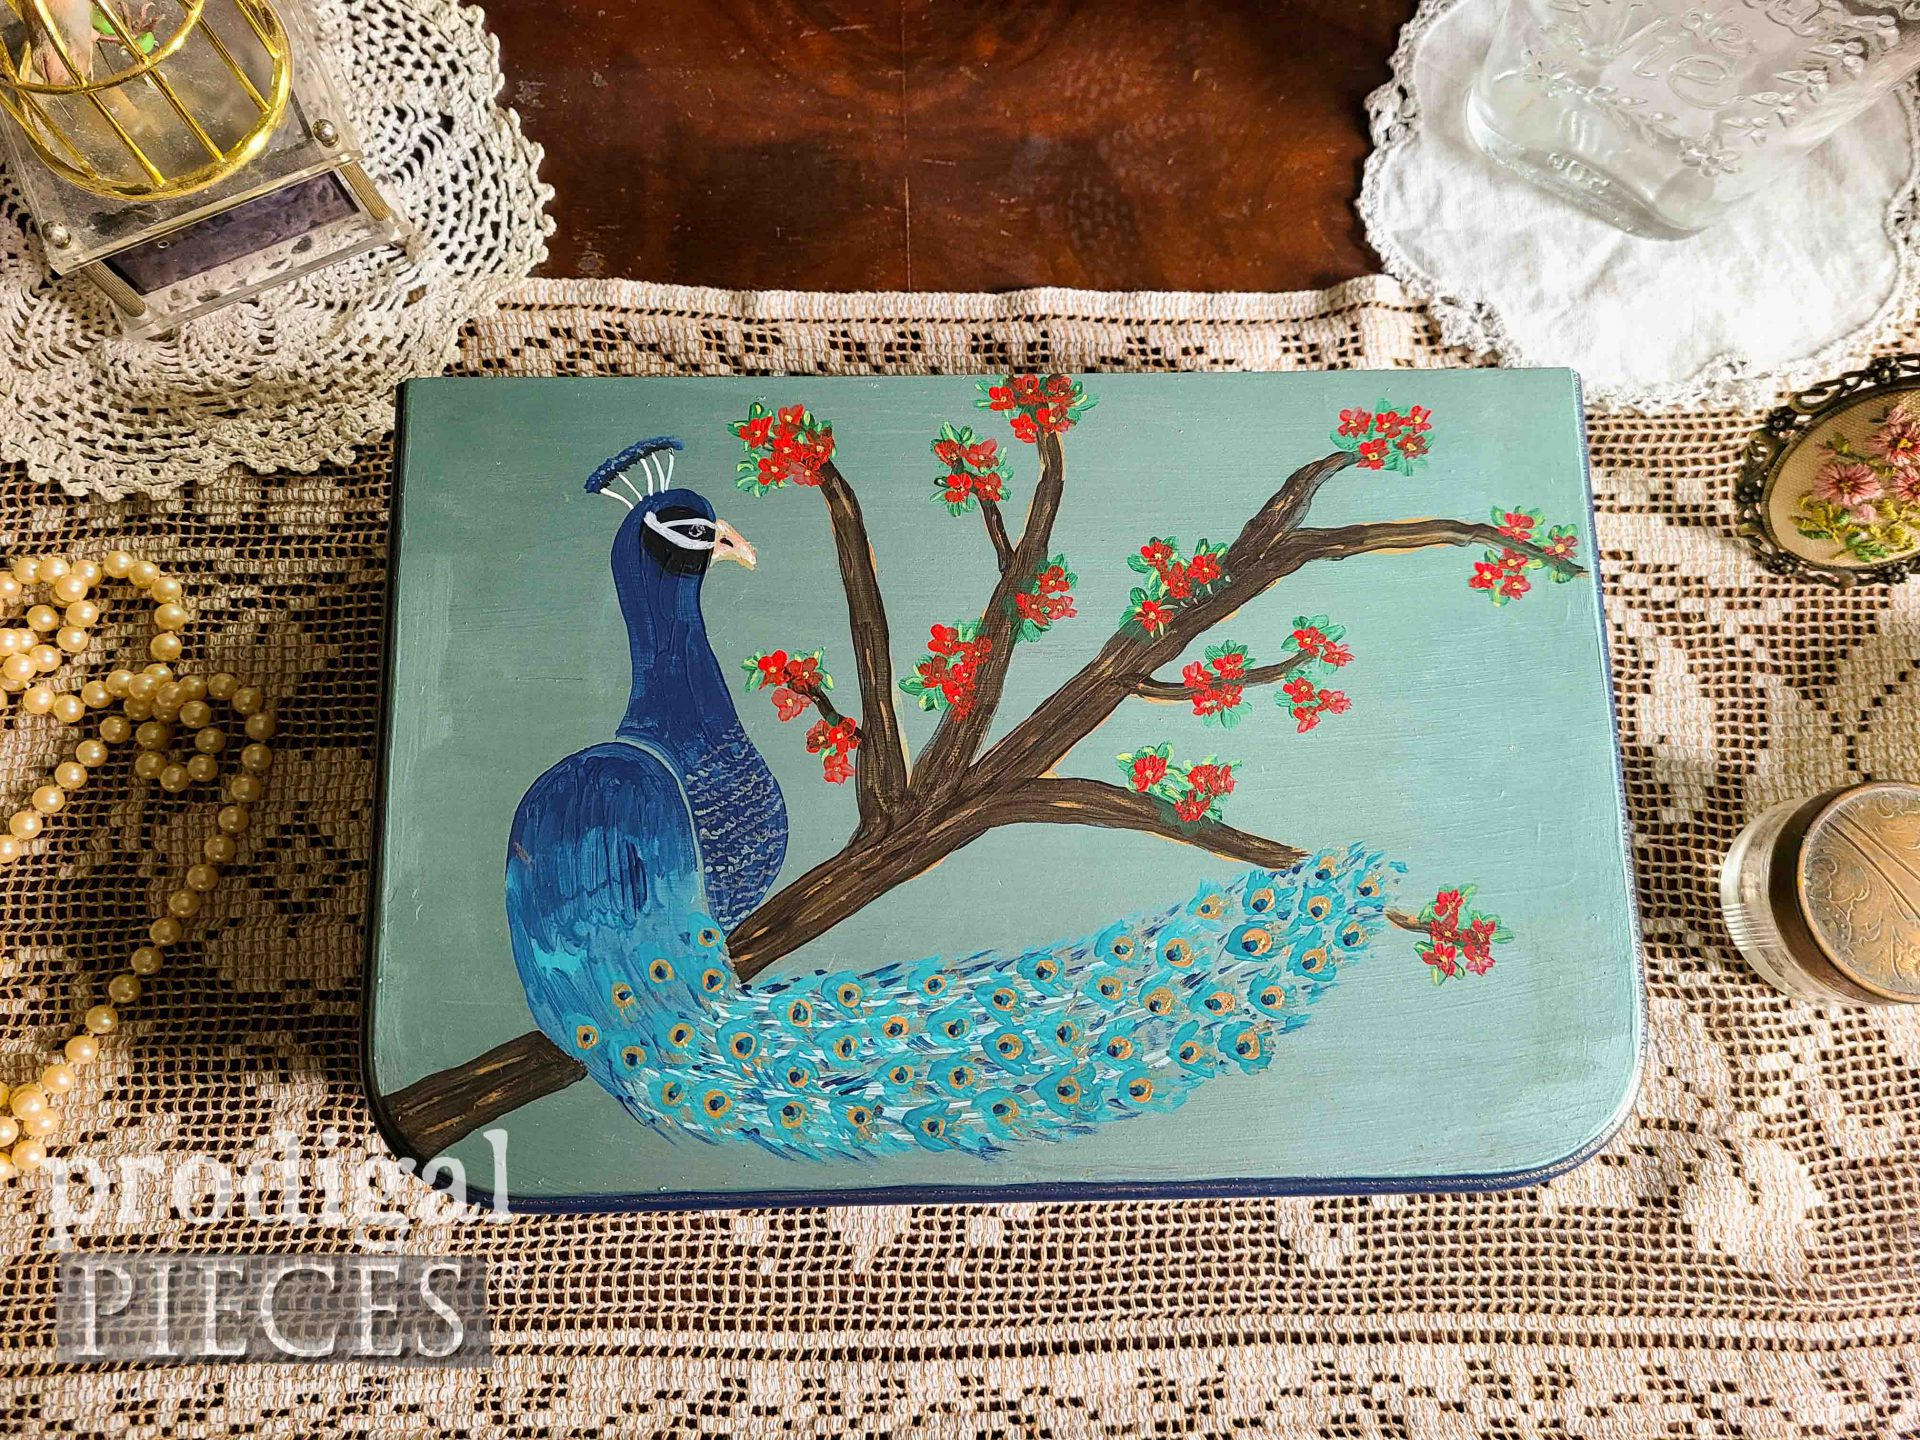 Beautiful Hand-Painted Peacock Jewelry Box by Larissa of Prodigal Pieces | prodigalpieces.com #prodigalpieces #diy #home #homedecor #art